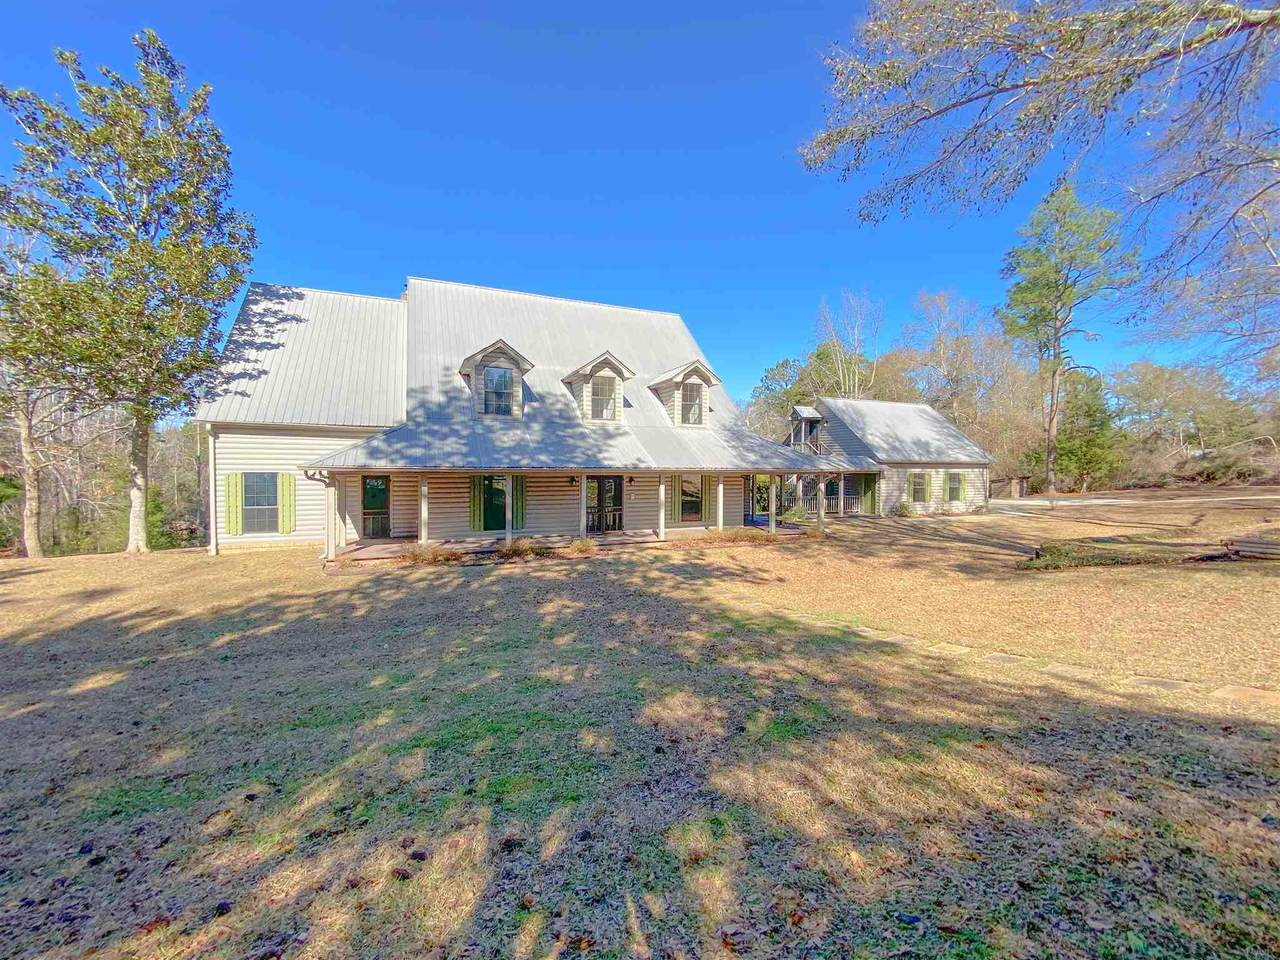 9651 Chumuckla Springs Rd - Photo 1